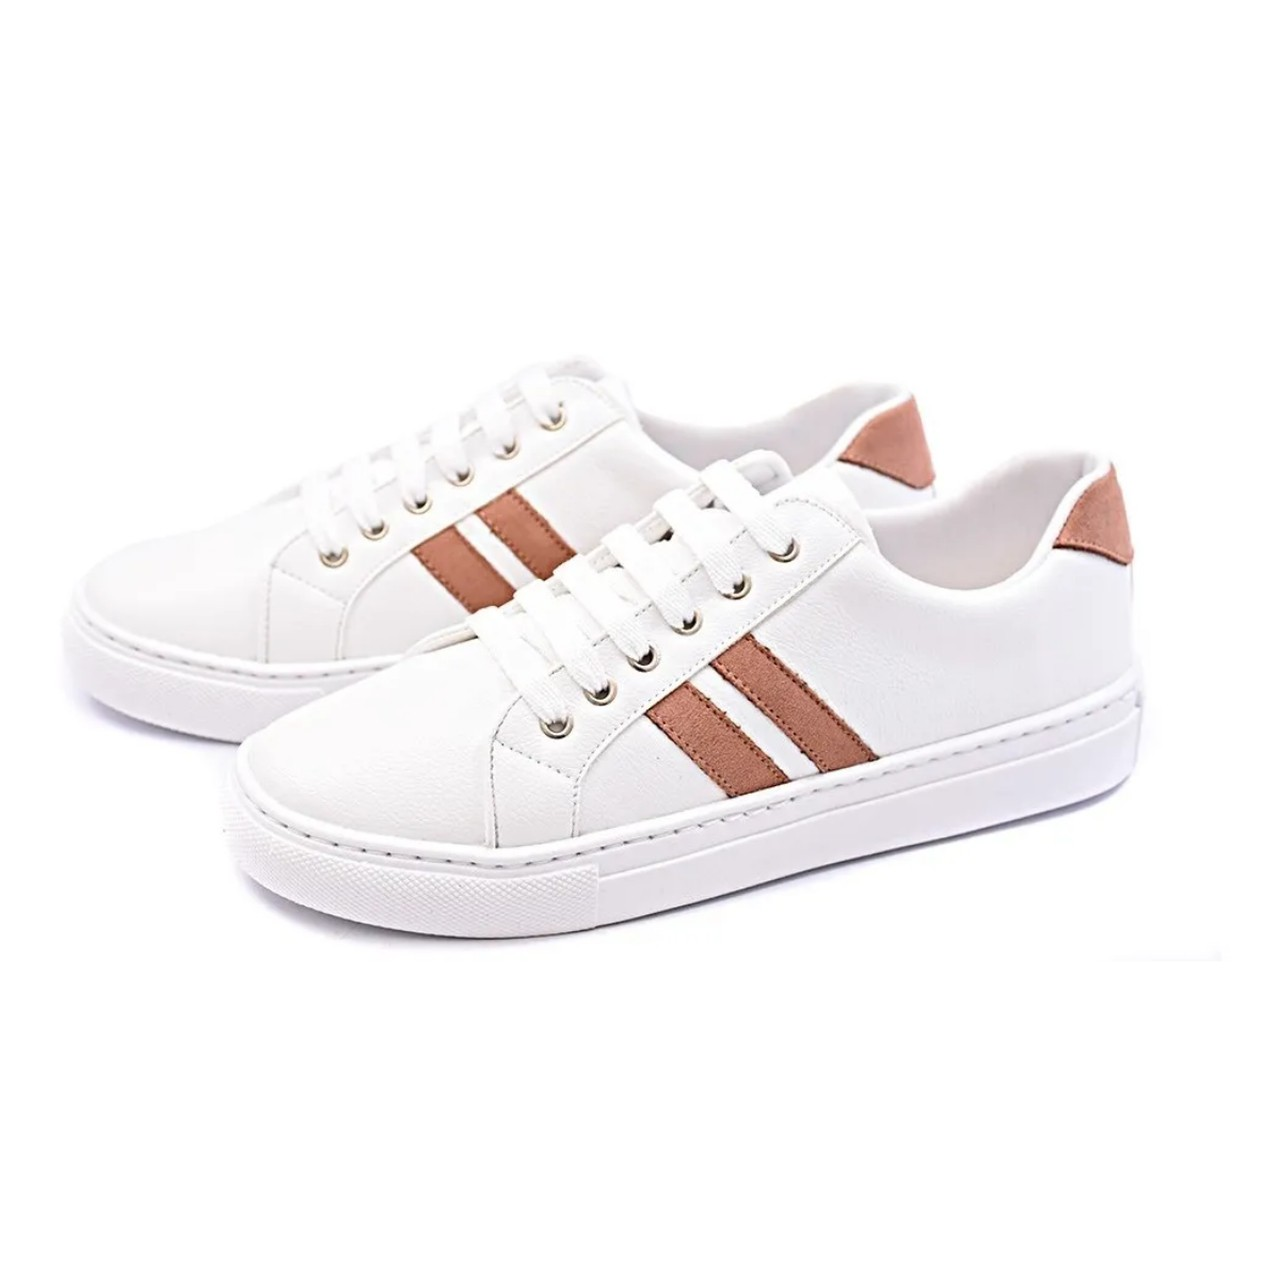 Tênis Casual Gommix Shoes 052 Listras Nude